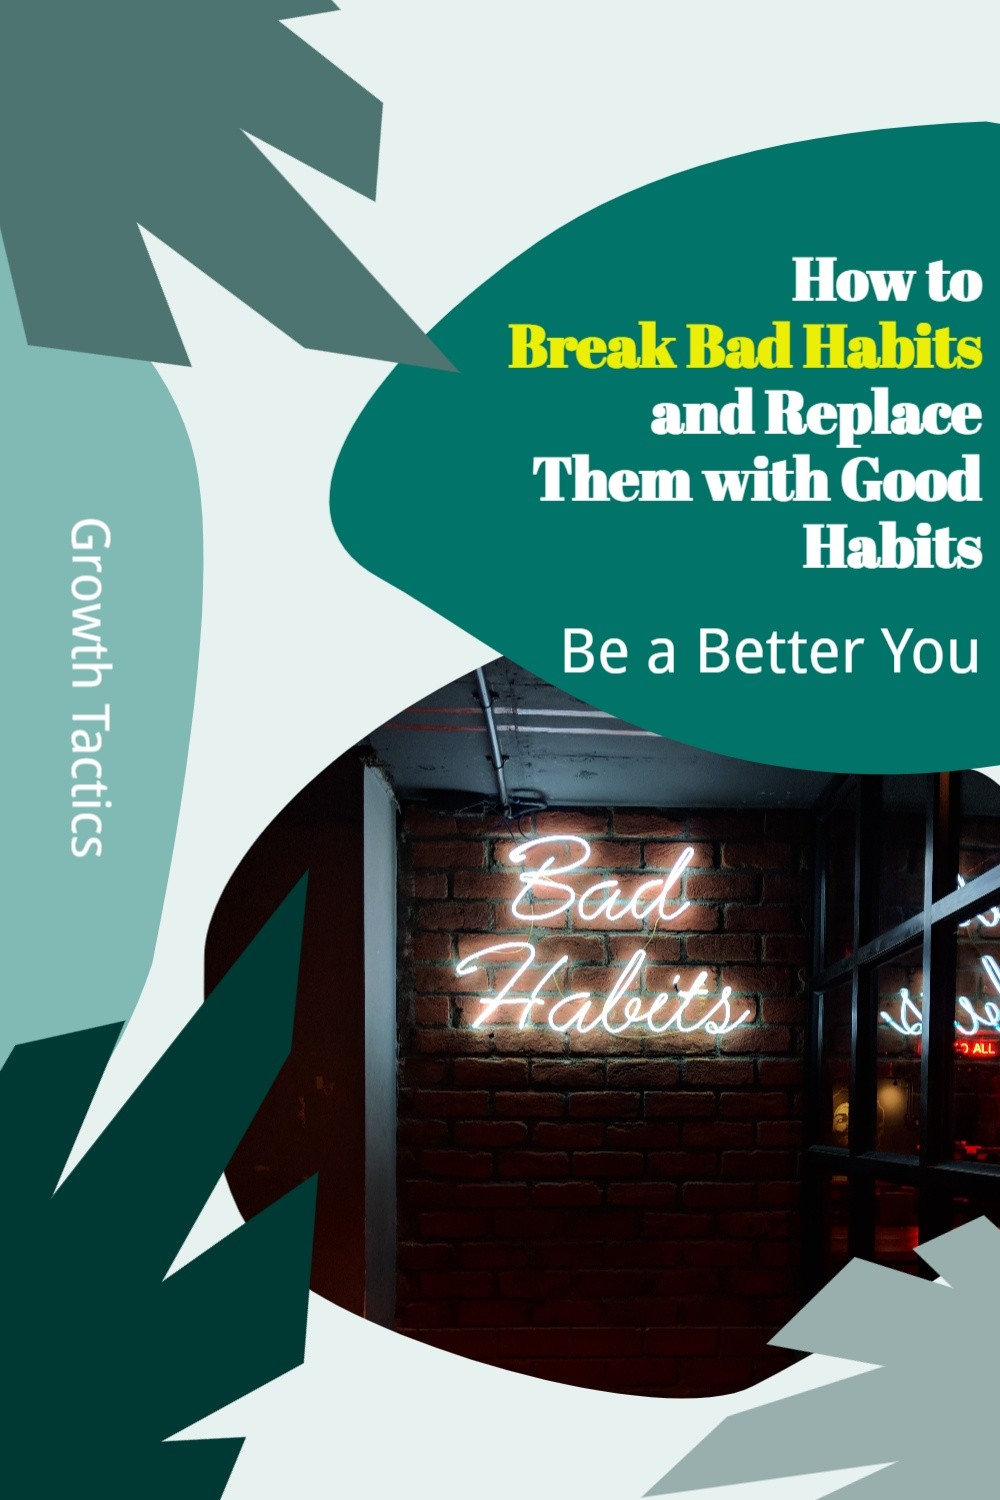 How to Break Bad Habits and Replace Them with Good Habits